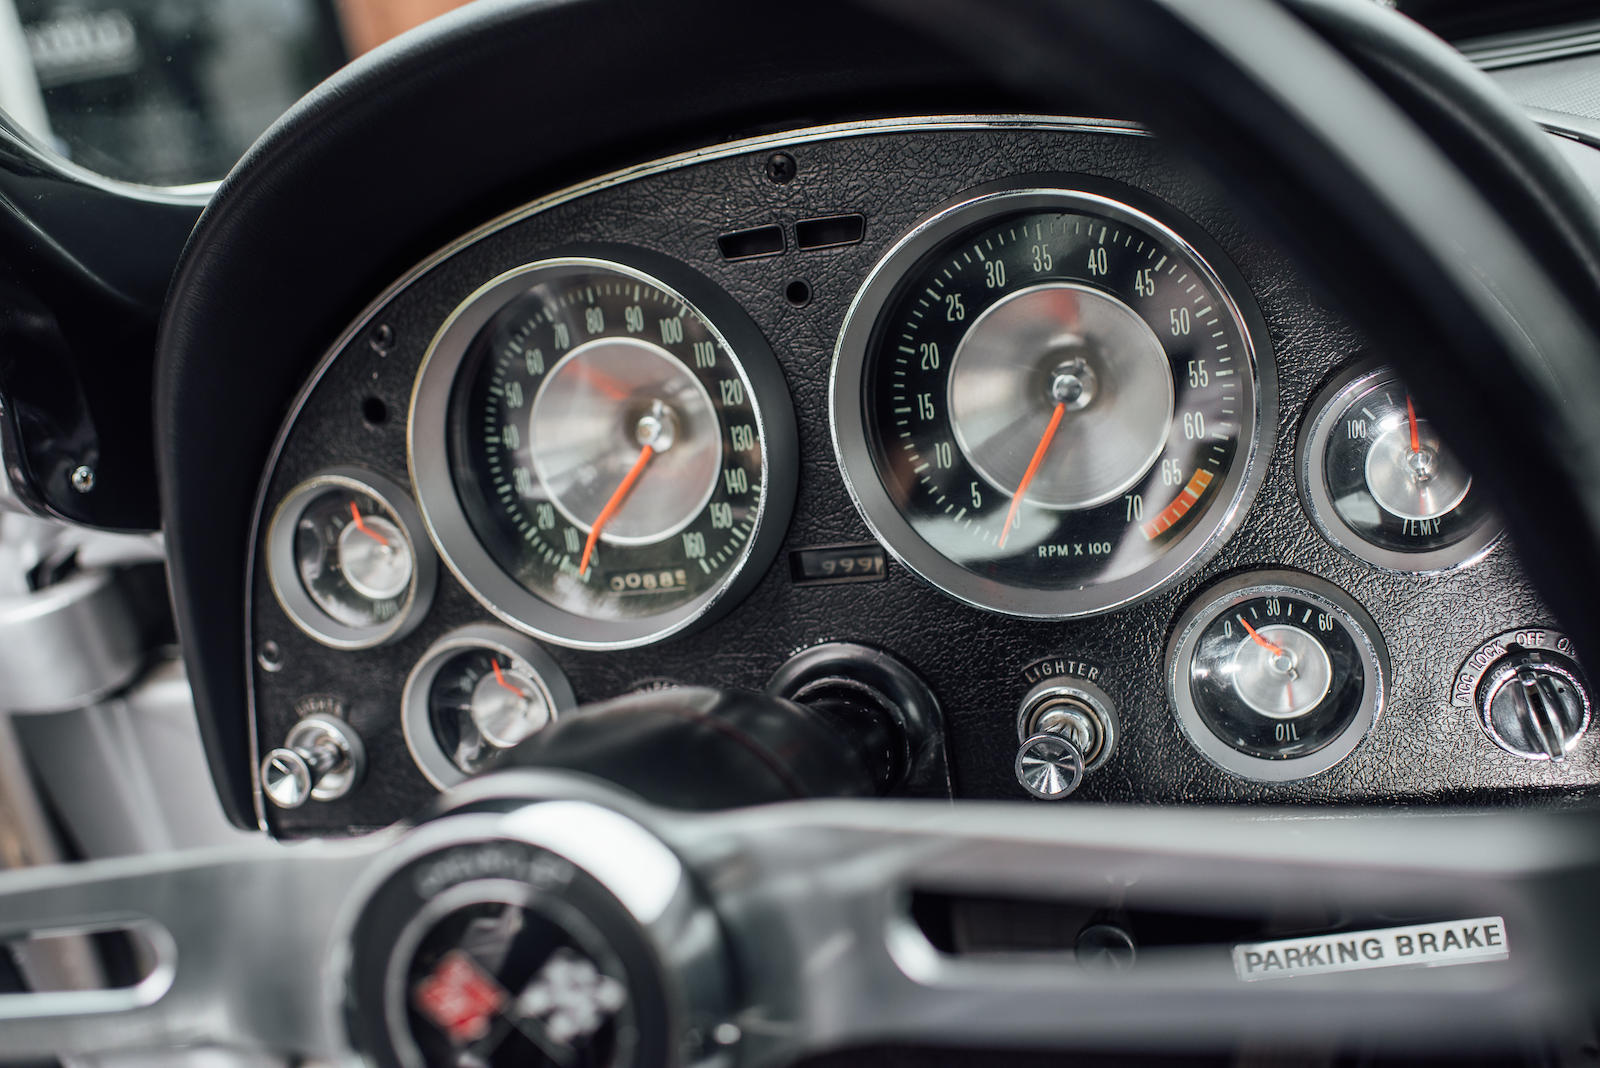 1963 Chevrolet Corvette gauges